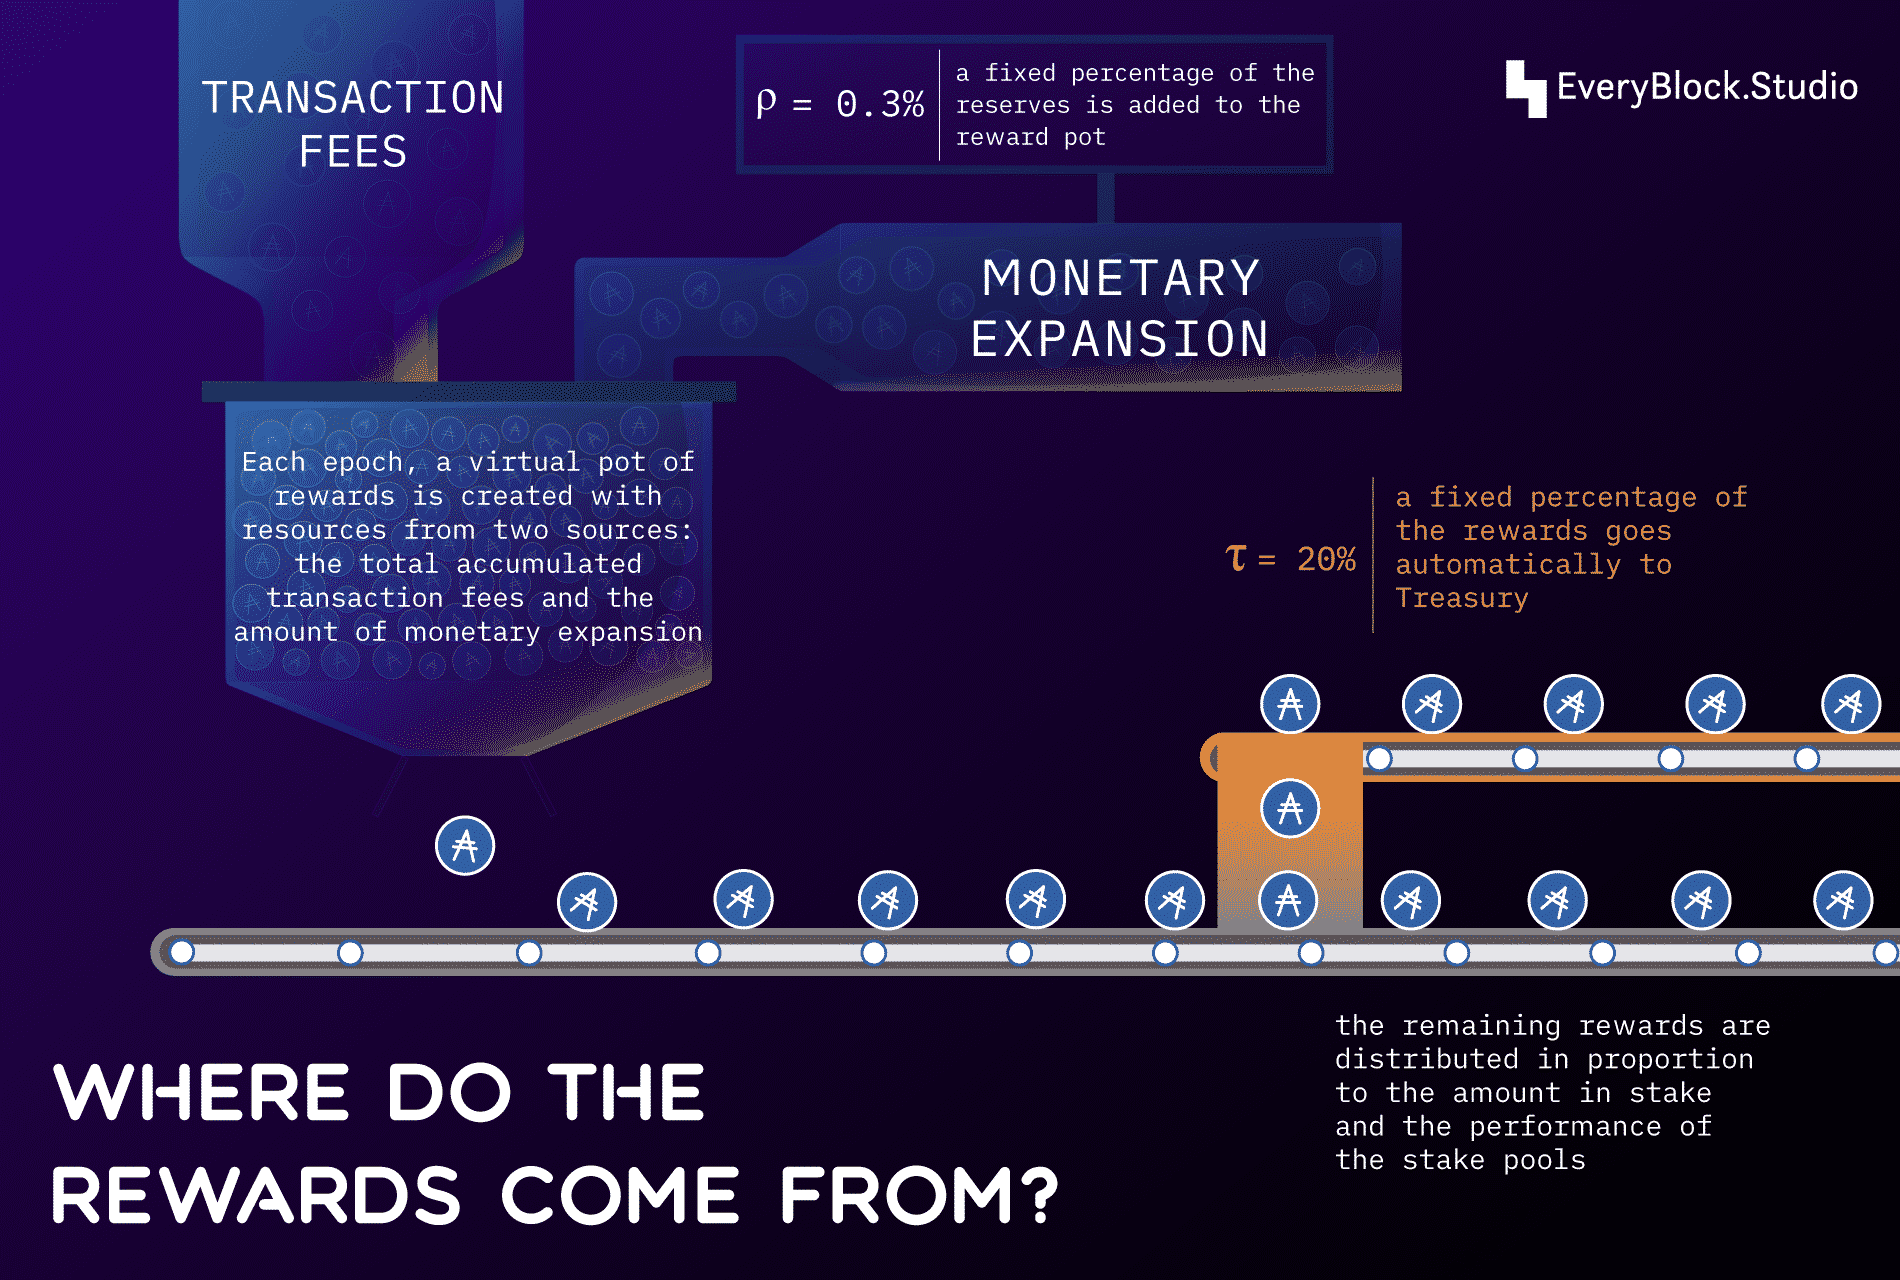 Where do the rewards come from?